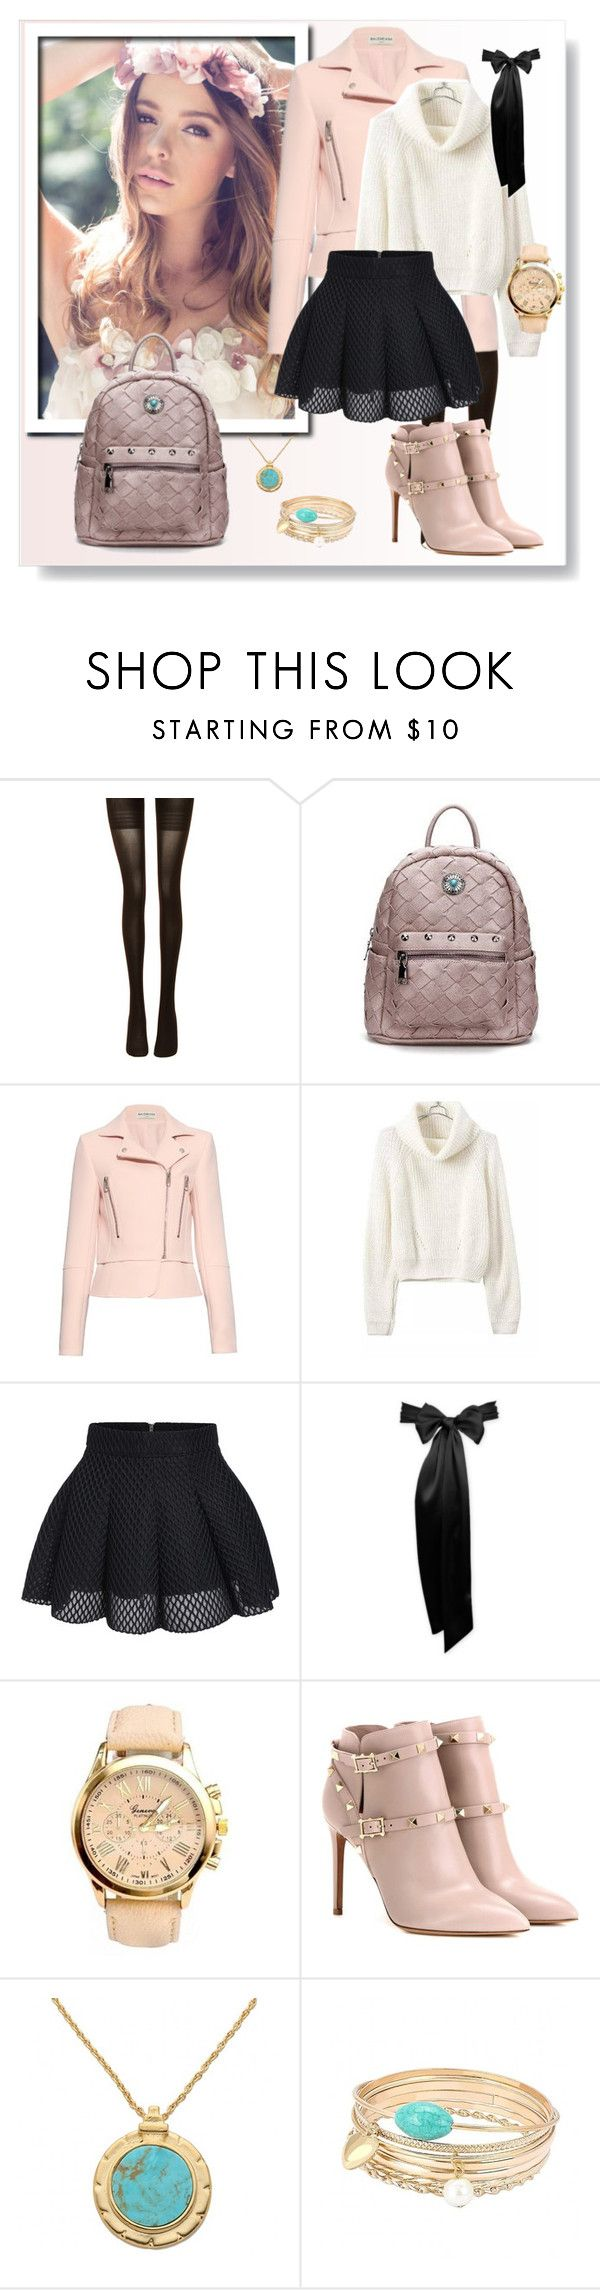 """Rose"" by karolay-marquez-bustamante ❤ liked on Polyvore featuring By Emily, Wolford, Balenciaga, Valentino and yoins"